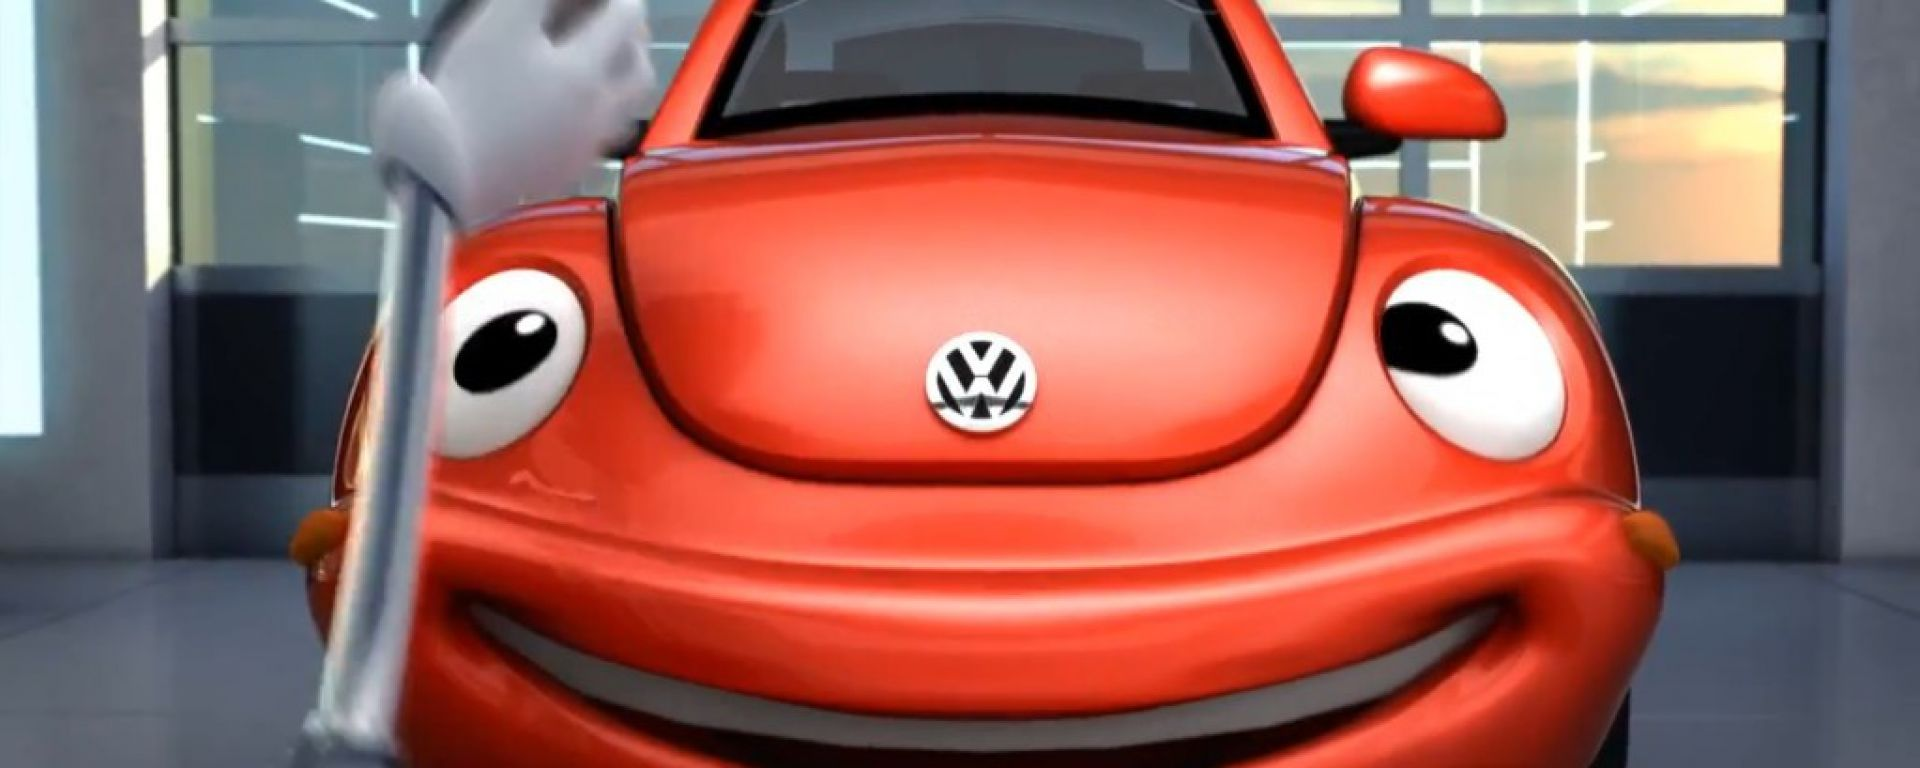 Volkswagen Service: lo spot cartoon